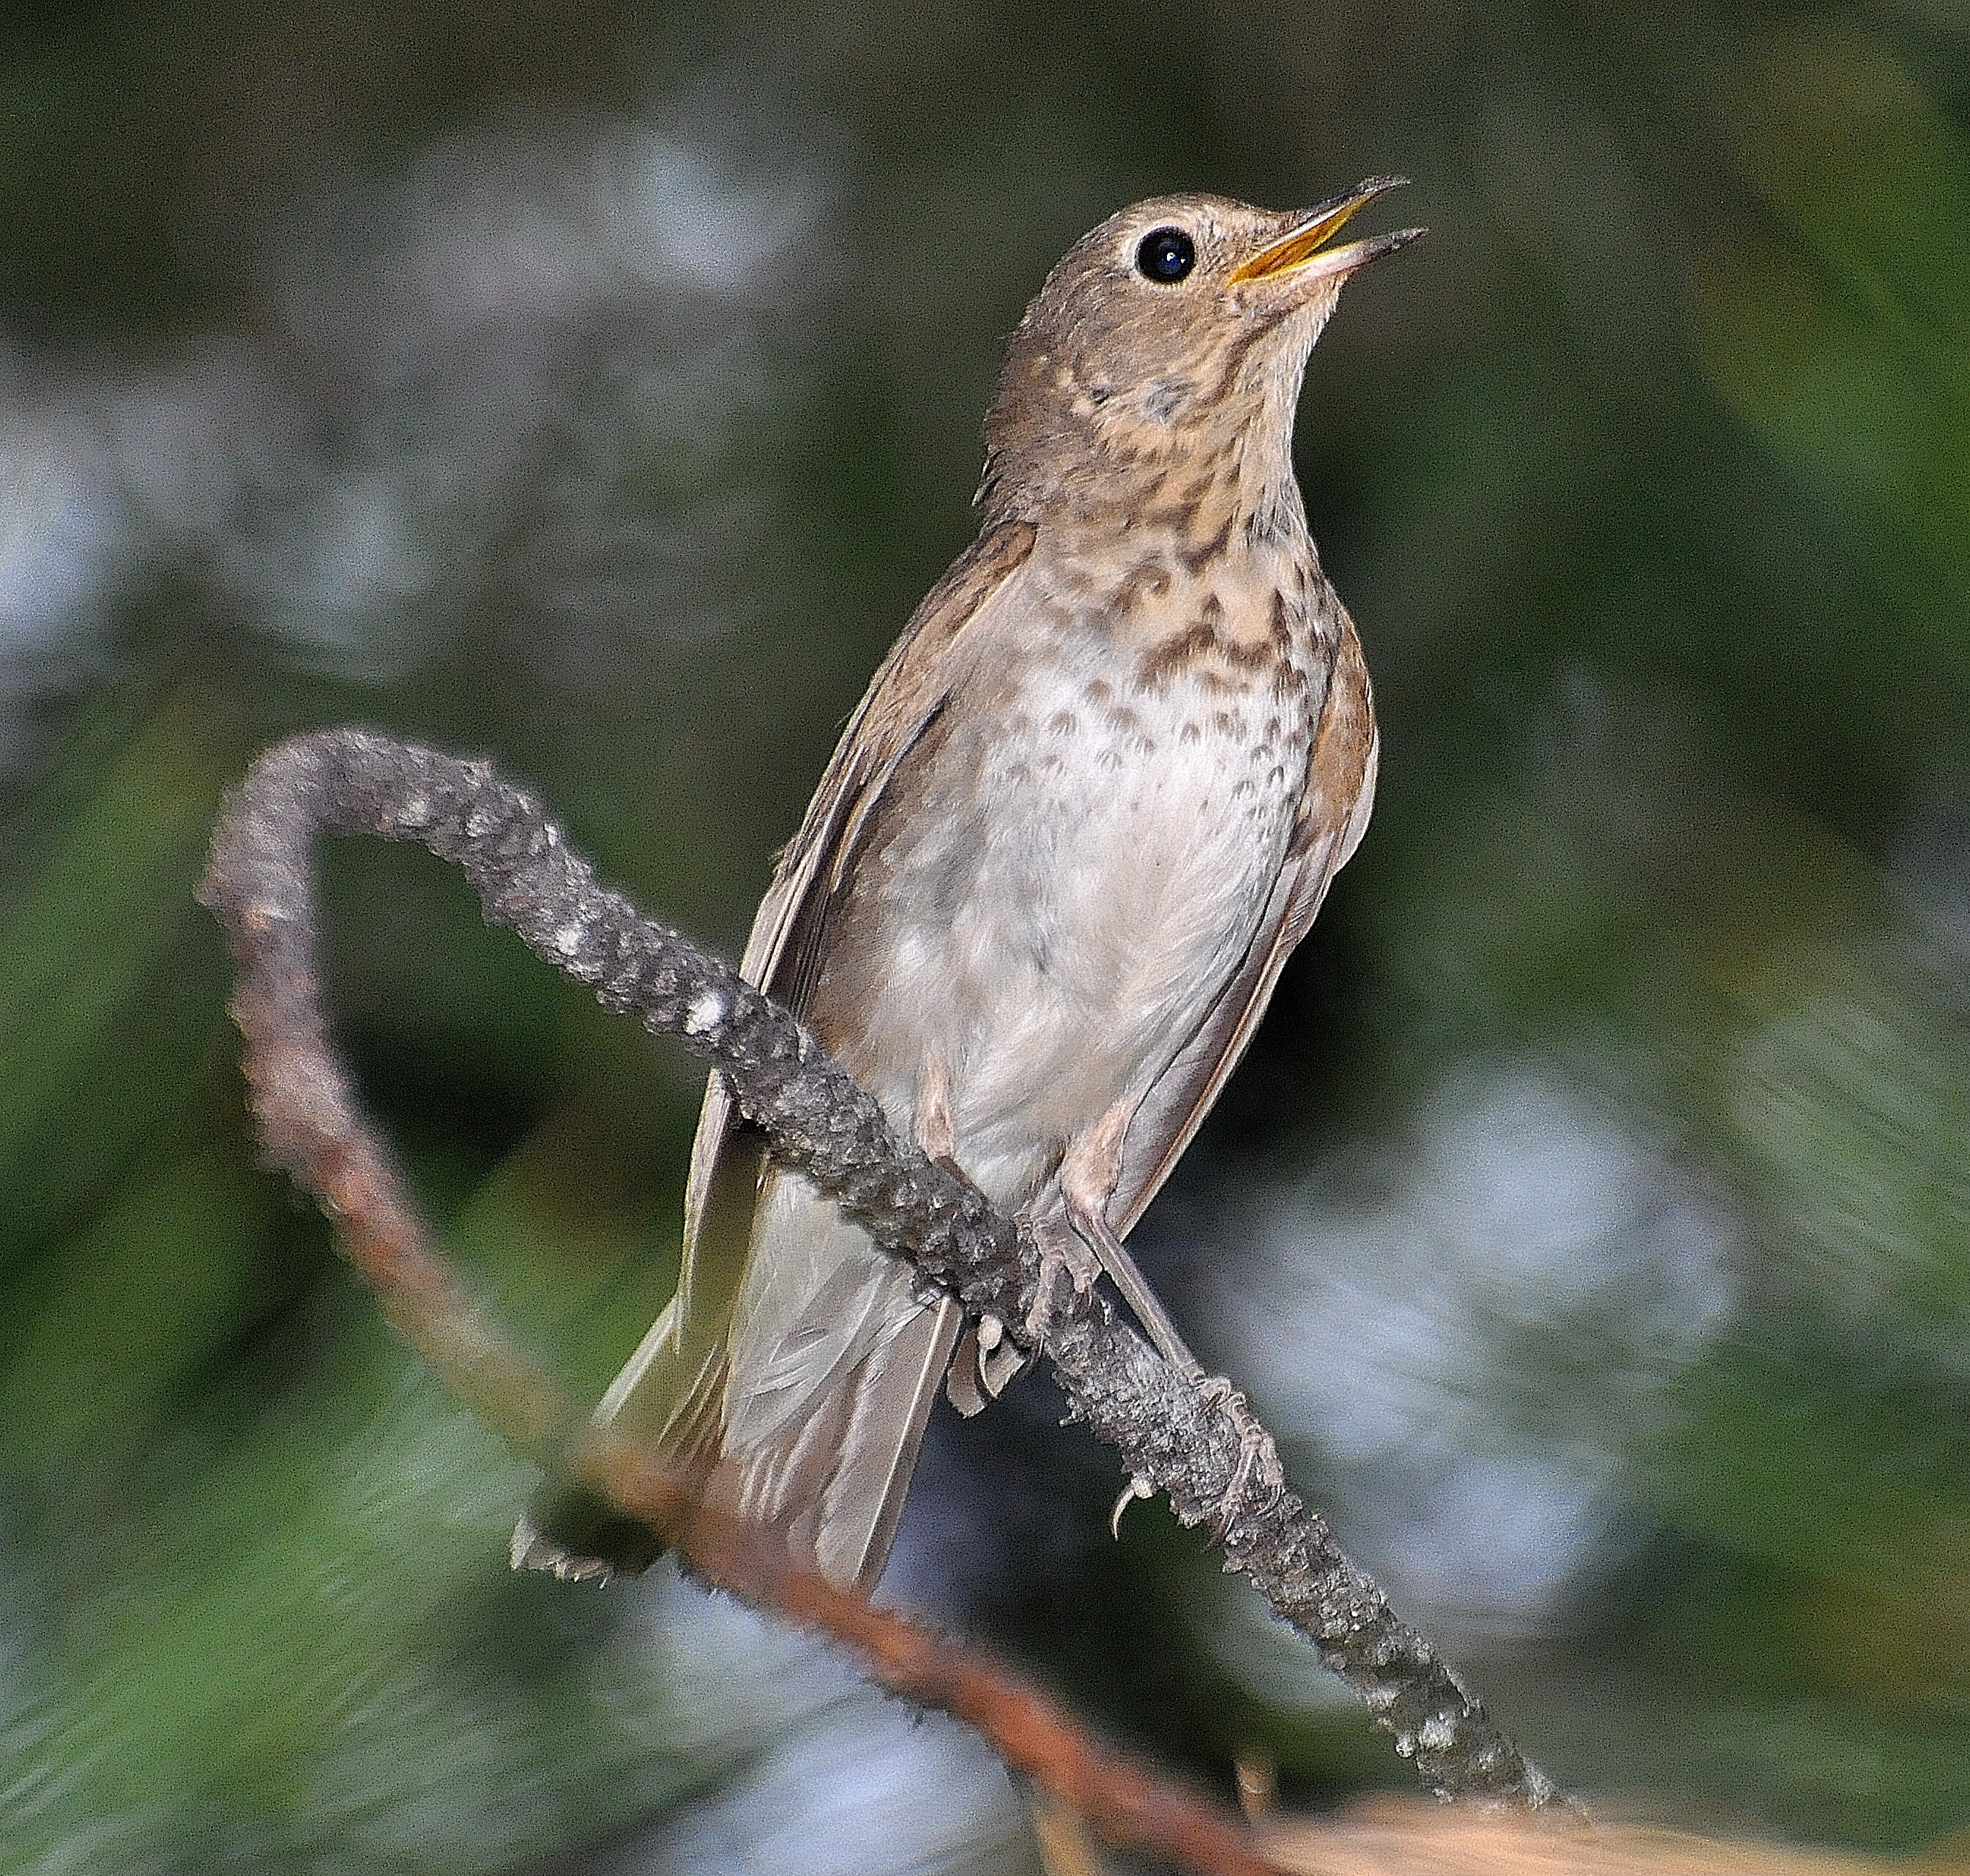 Swainson's Thrush photo: Joe Meche